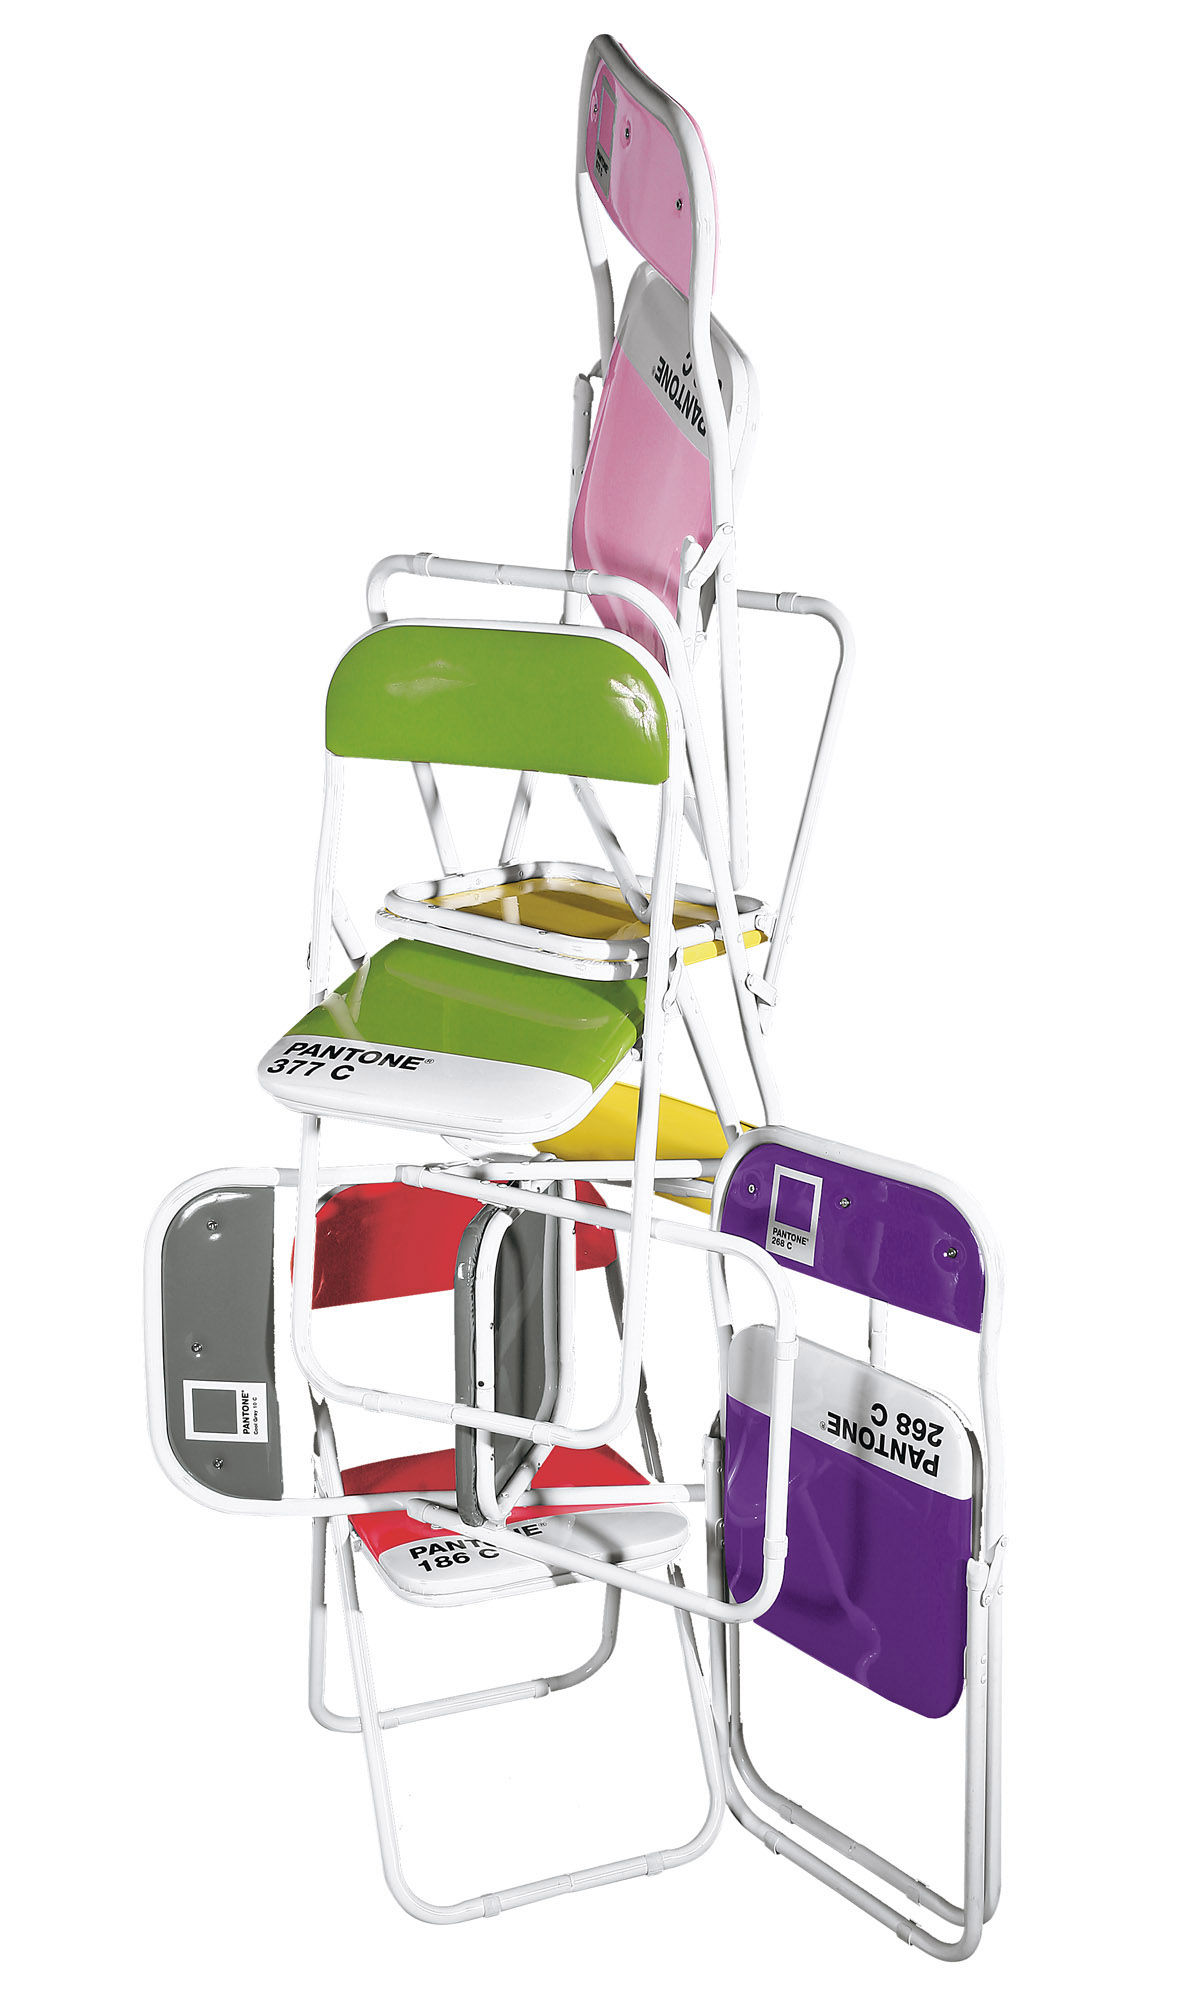 Pantone Chair Pantone Children S Chair Folding Chair For Kid By Seletti